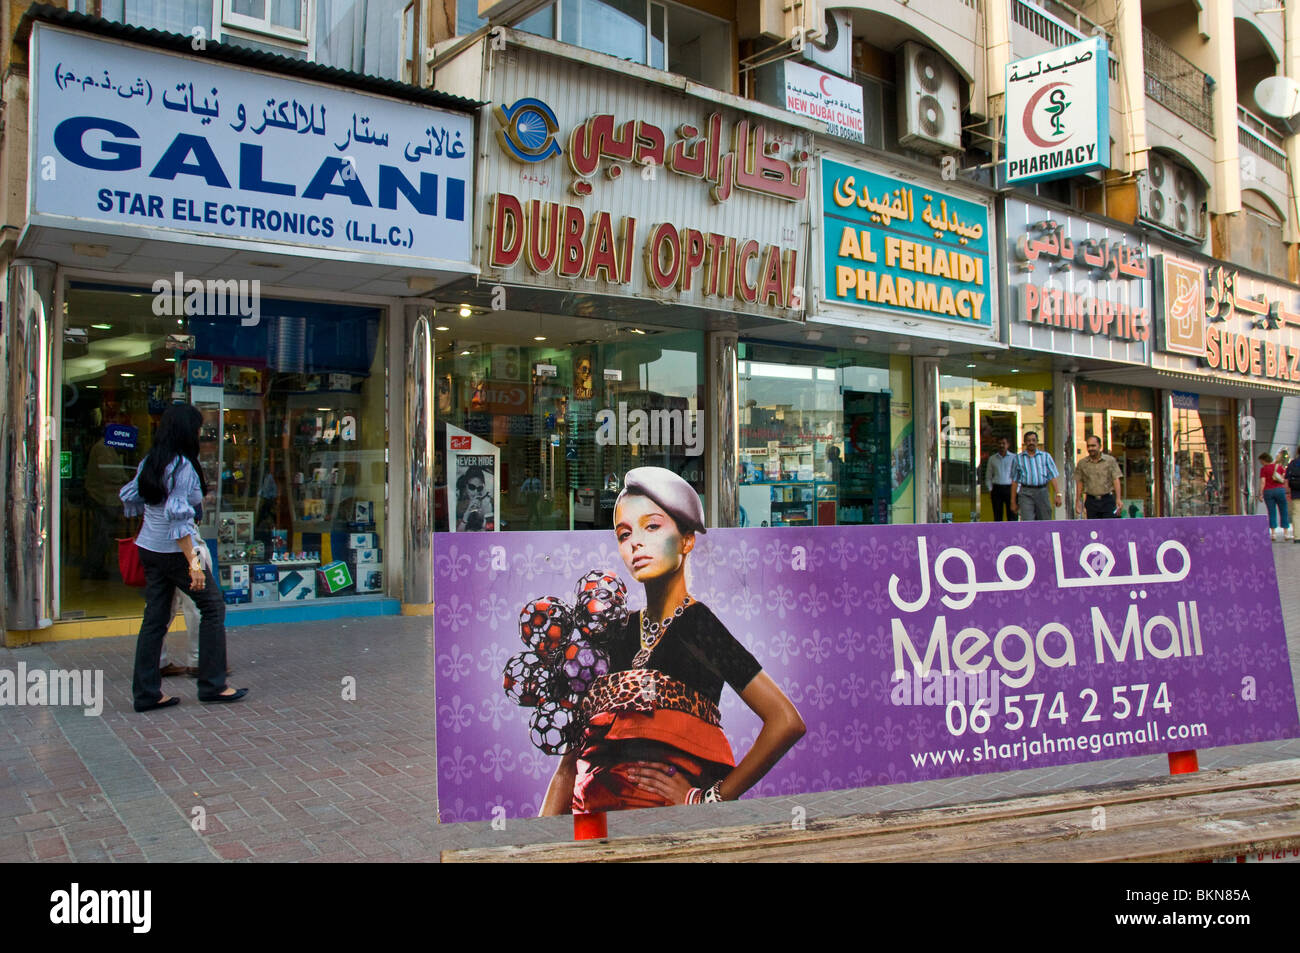 Bur Dubai shopping area in Dubai Stock Photo: 29356246 - Alamy